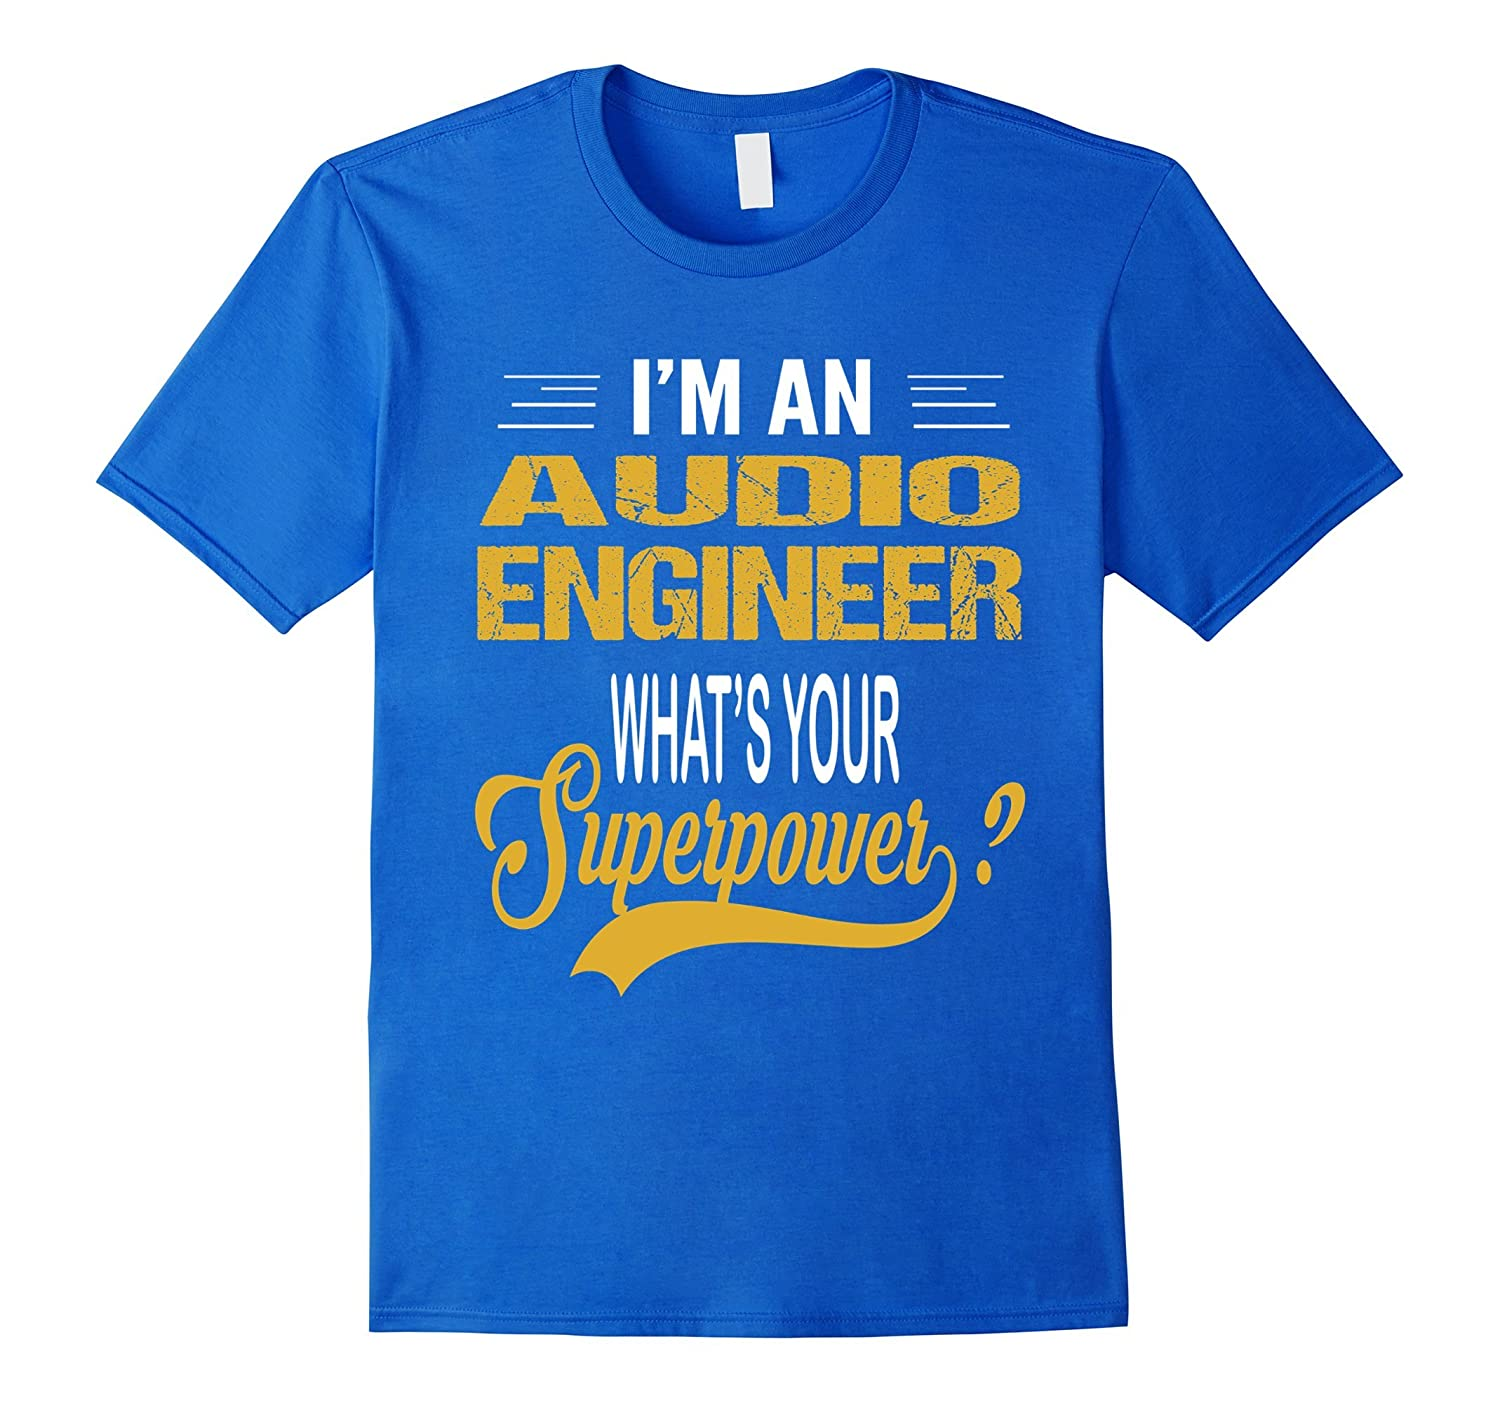 AUDIO ENGINEER - Whats Your Superpower T-Shirt-Vaci